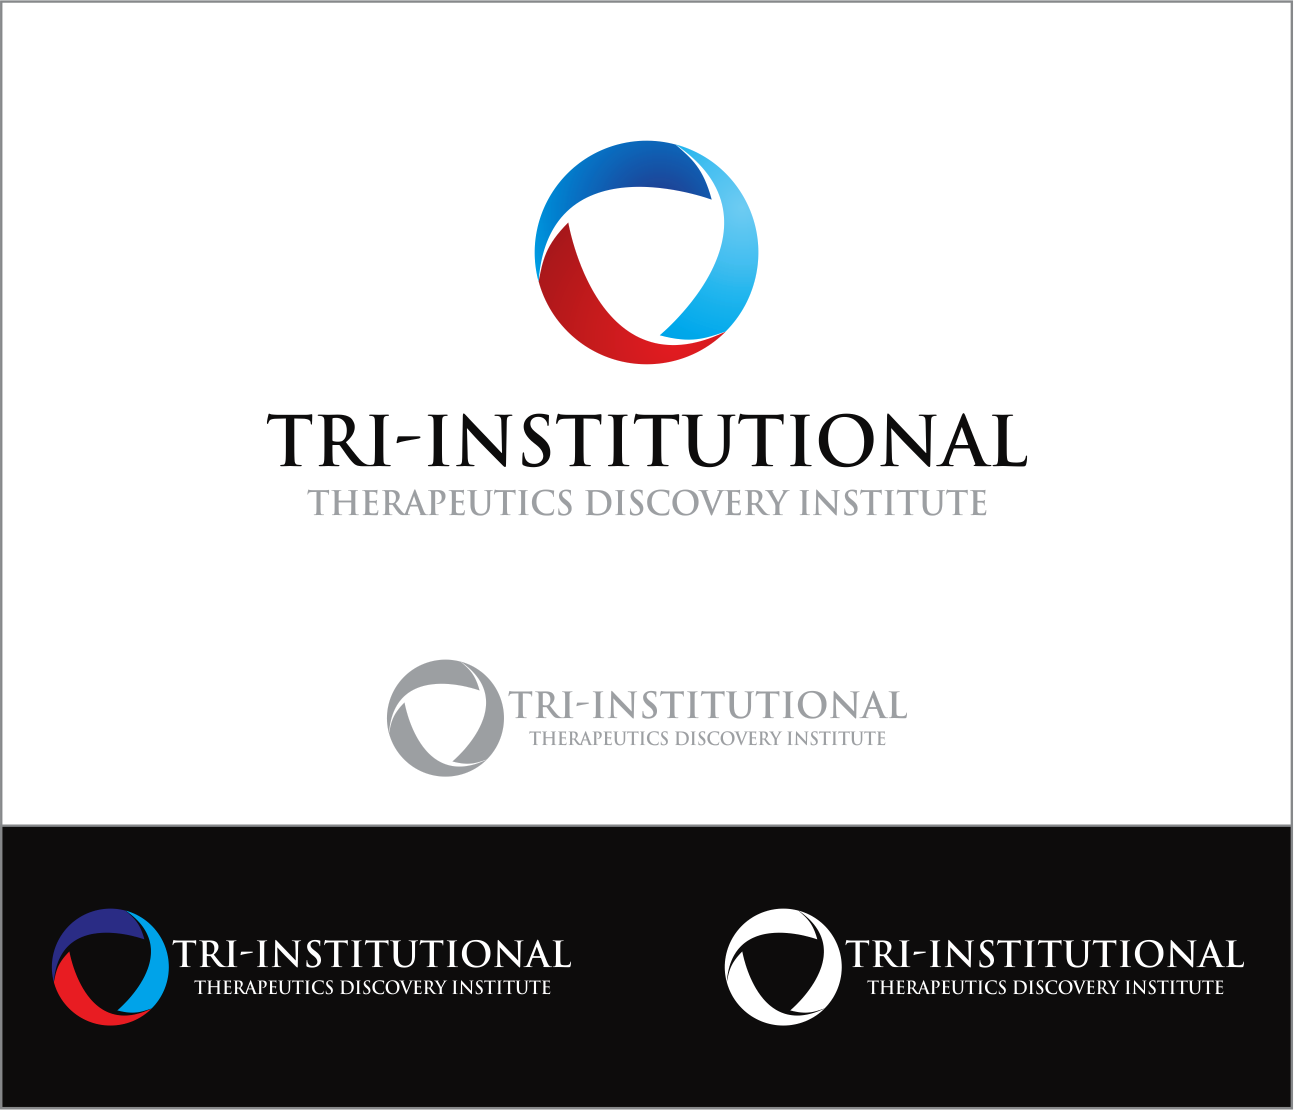 Logo Design by Armada Jamaluddin - Entry No. 105 in the Logo Design Contest Inspiring Logo Design for Tri-Institutional Therapeutics Discovery Institute.